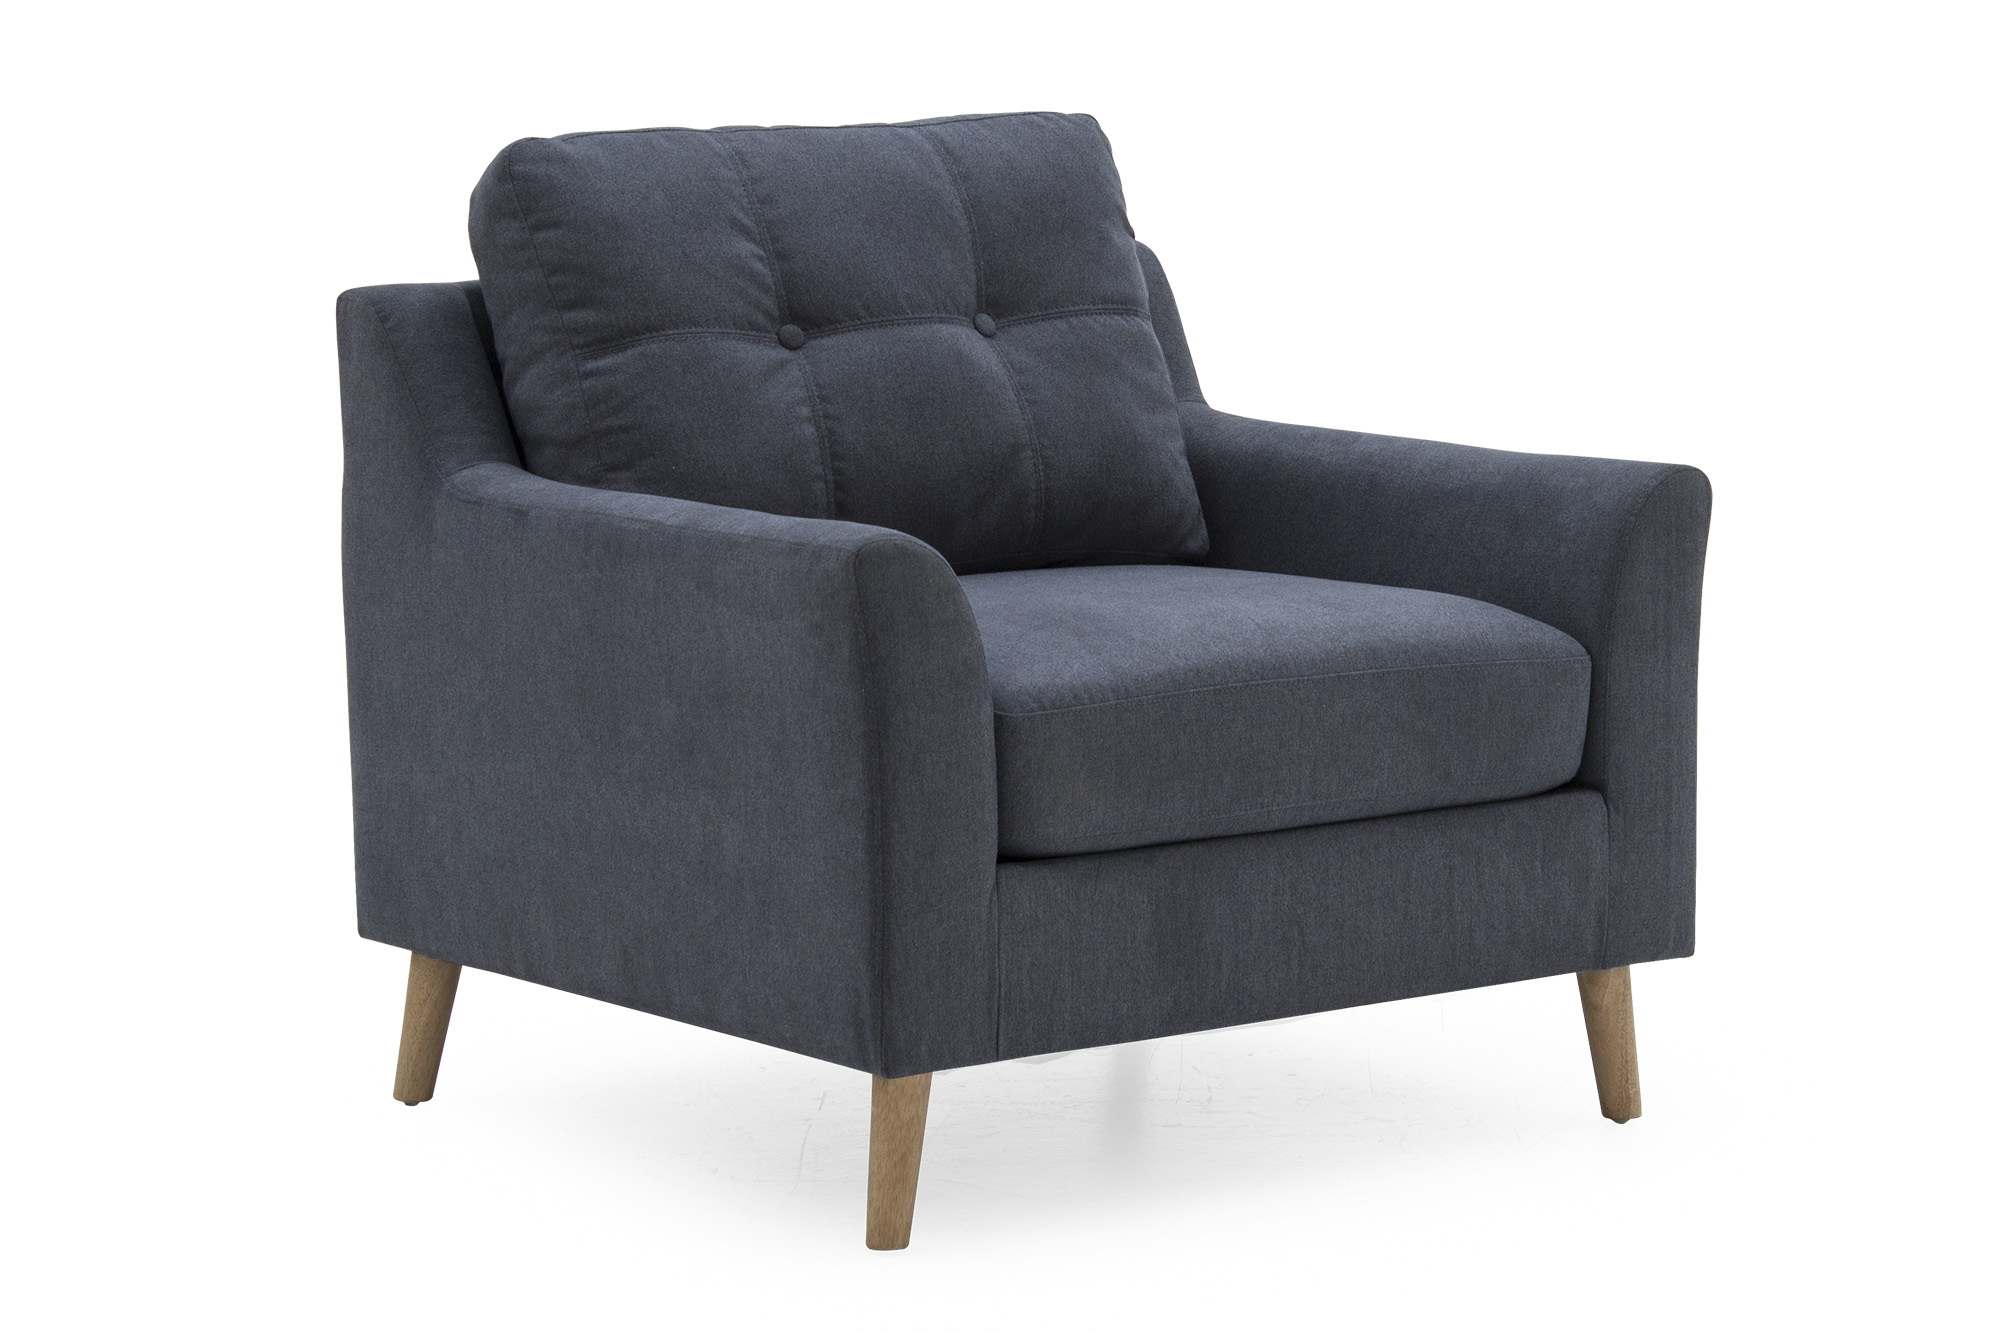 Olten 1 Seater Charcoal - Angle